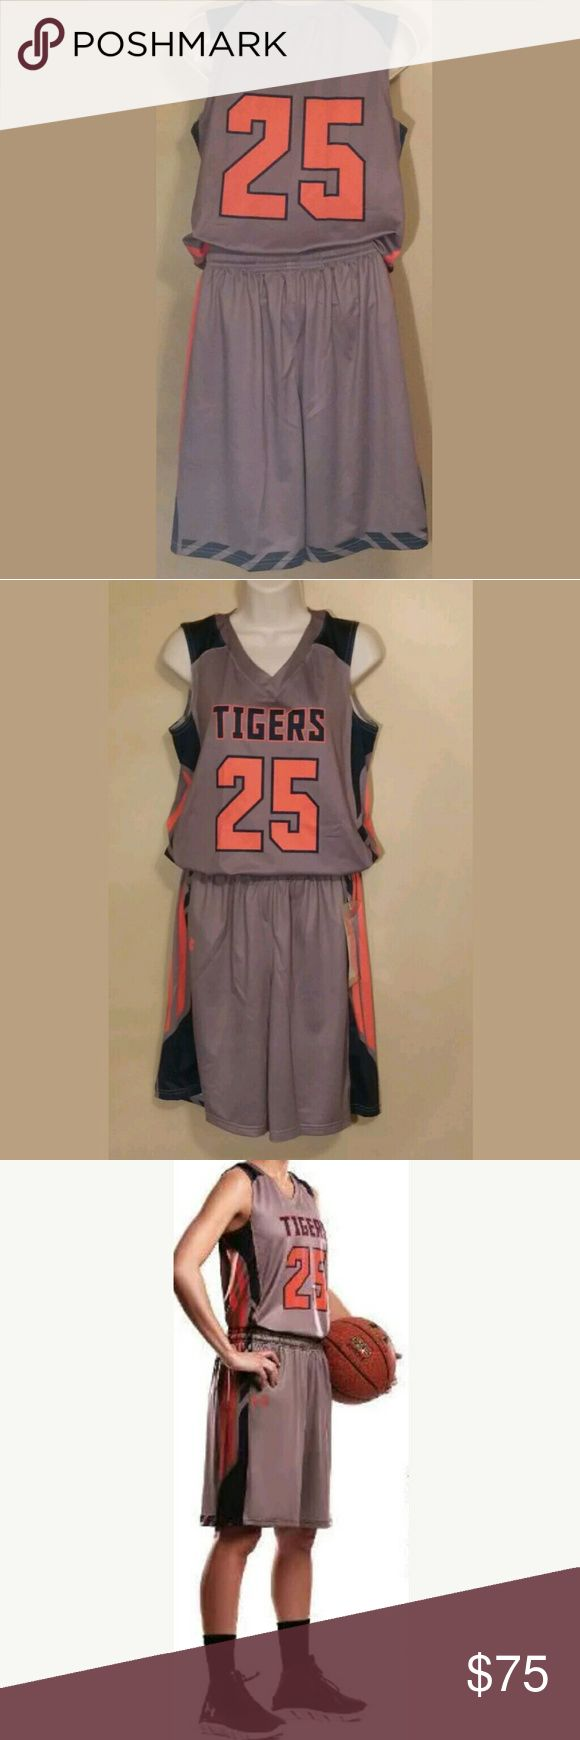 Womens Auburn Tigers Basketball Uniform Small Womens Auburn Tigers Small Basketball Jersey/Shorts #25 Under Armour New Under Armour Shorts